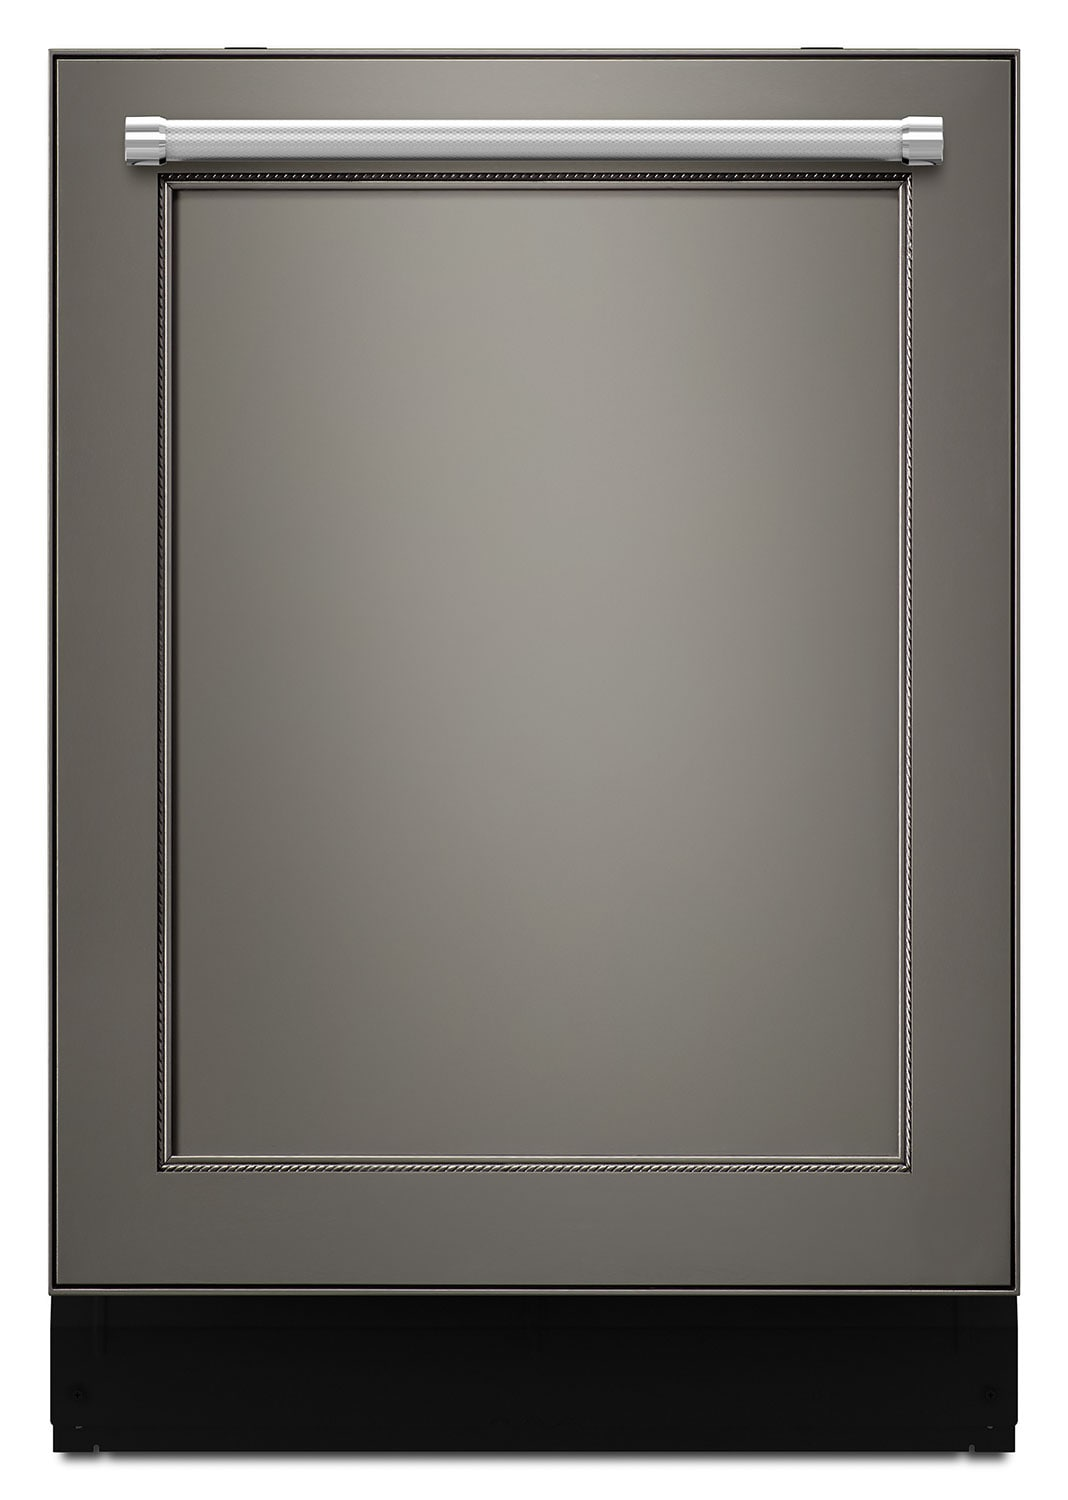 Kitchenaid Custom Panel Ready 24 Dishwasher Kdtm504epa